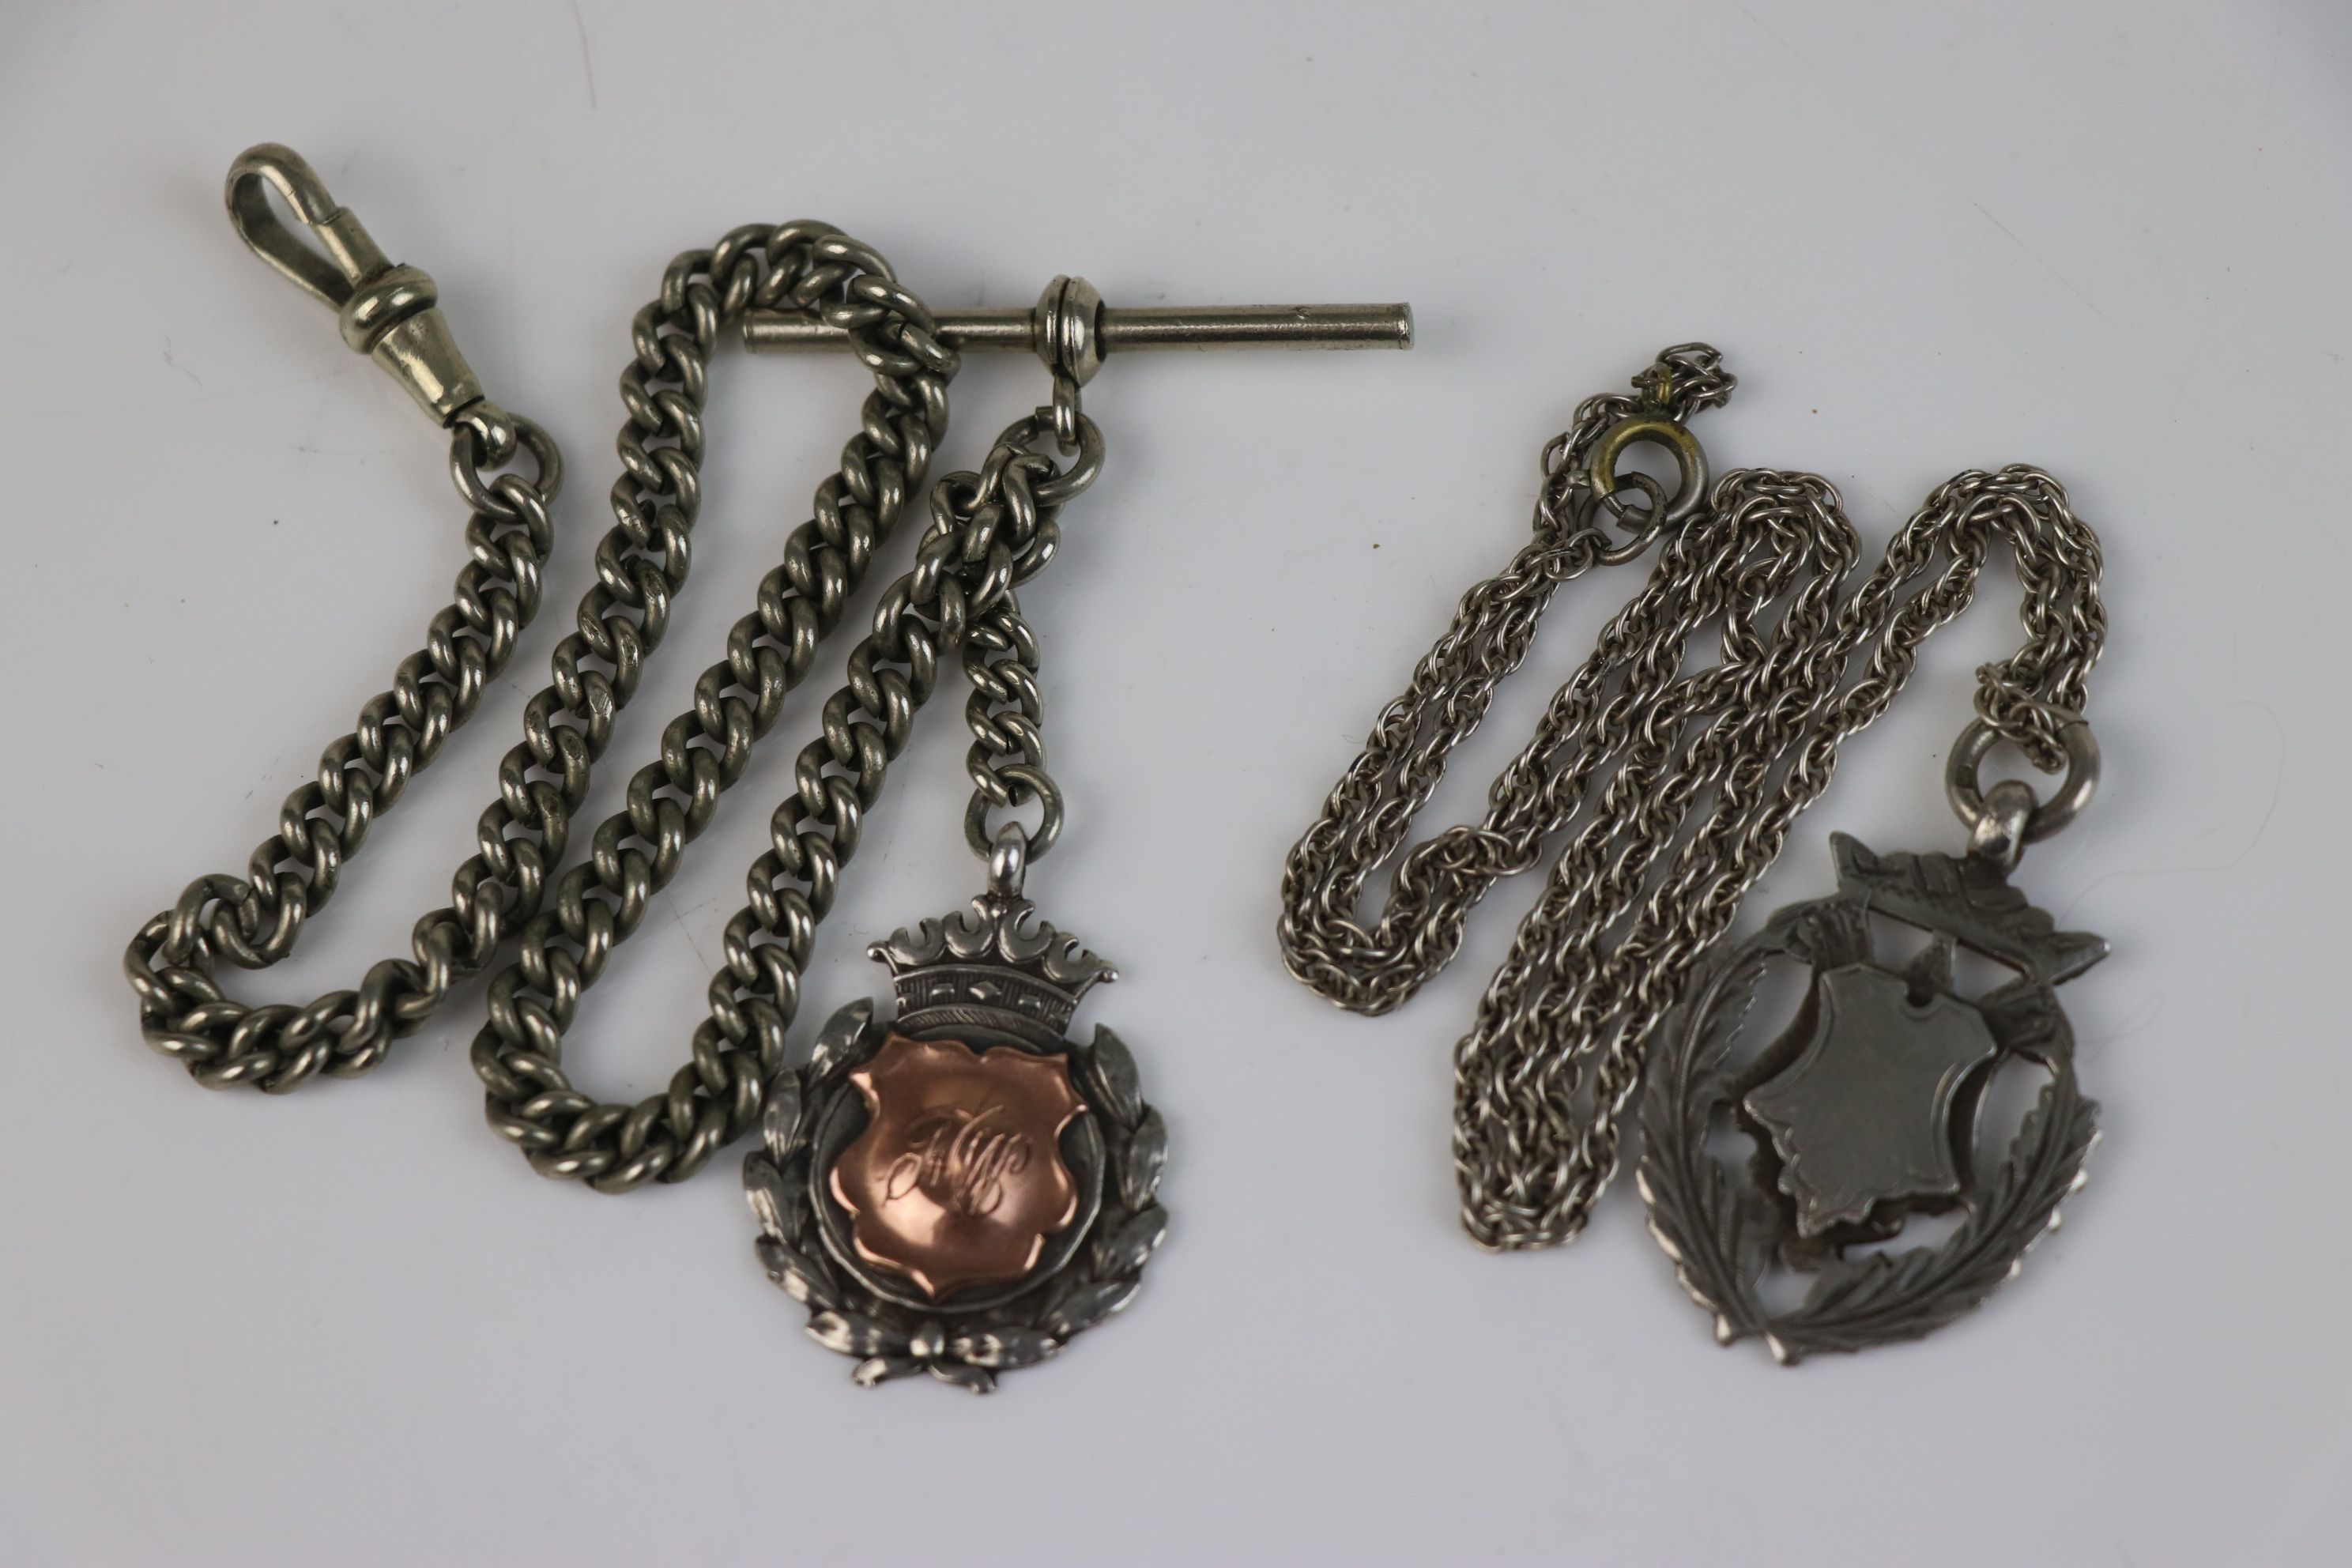 Two fully hallmarked sterling silver watch fob medallions together with an Albert chain. - Image 5 of 5